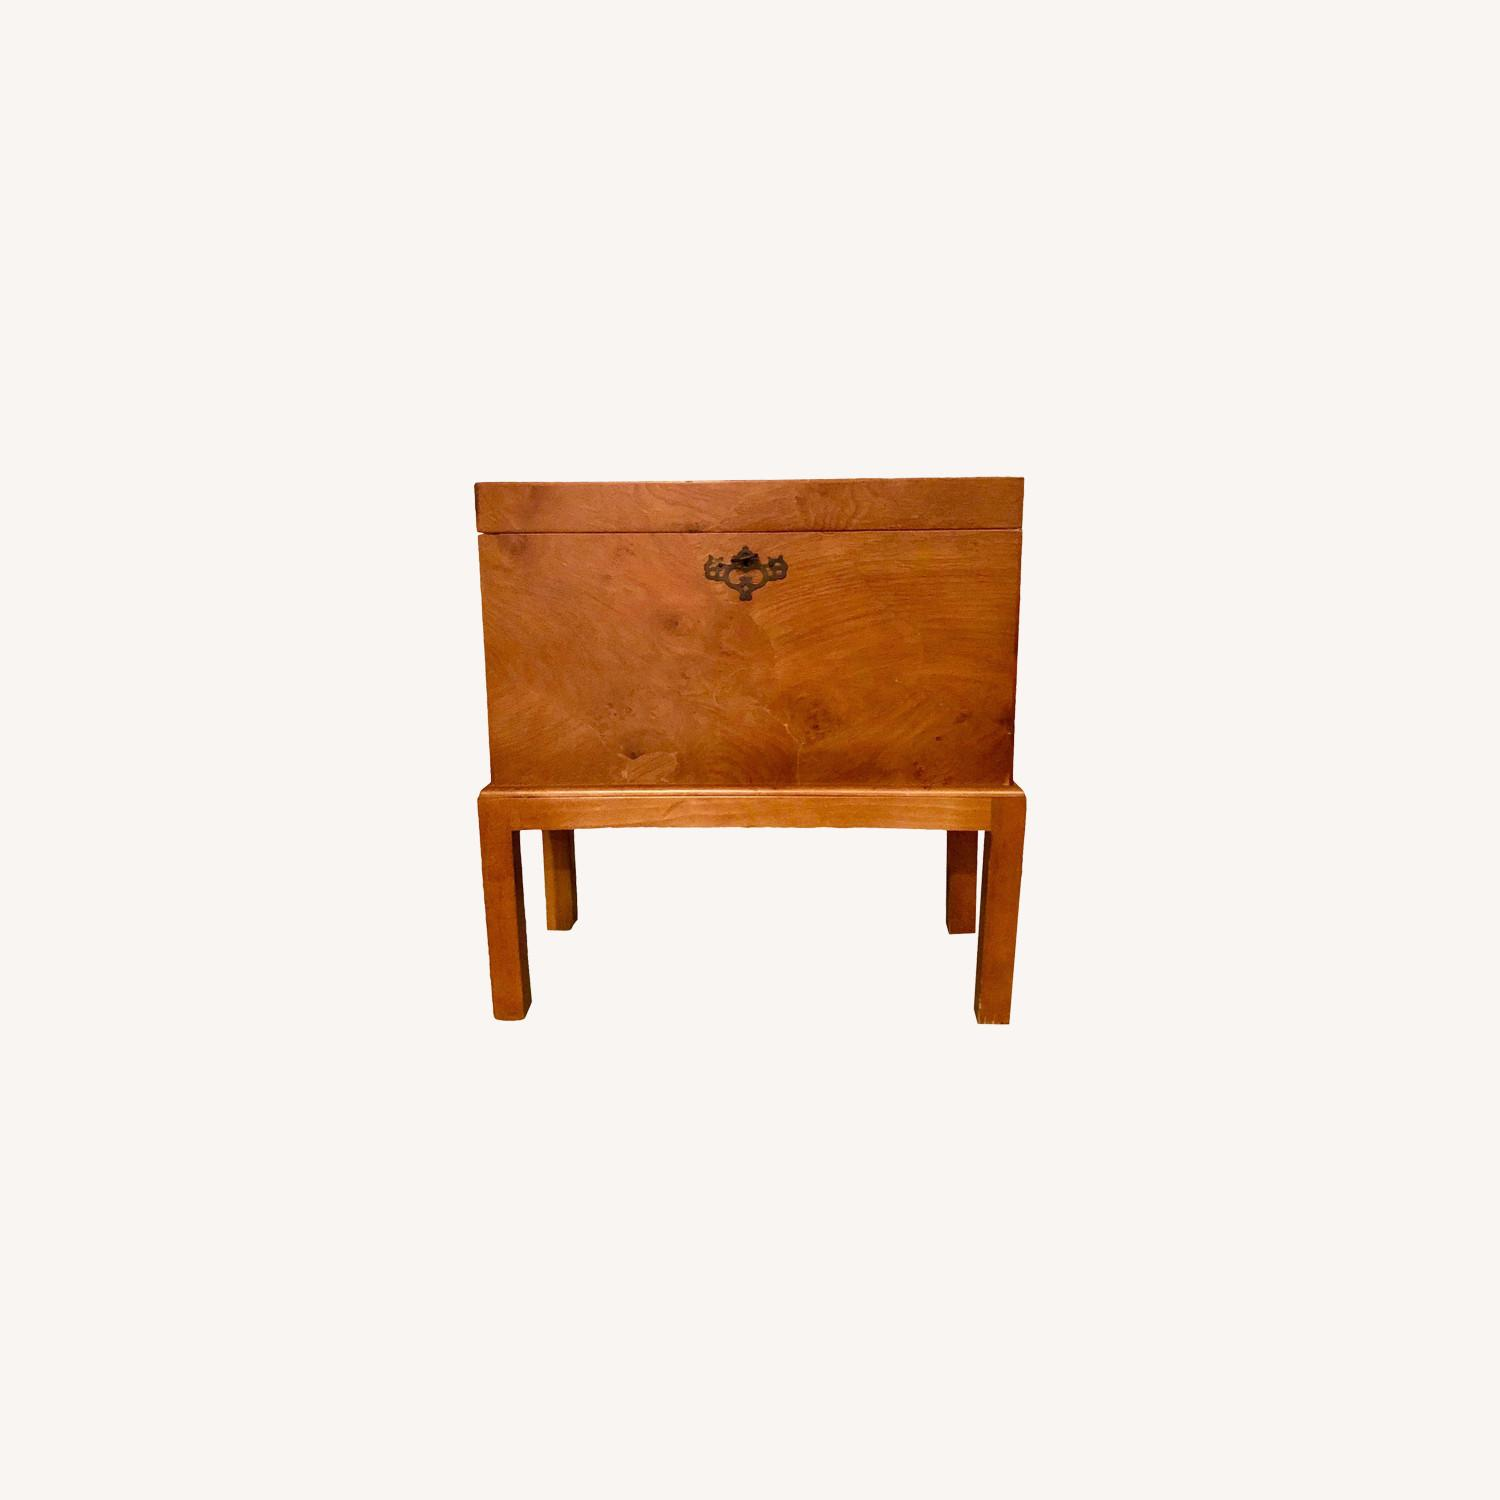 Vintage Wooden Keyhole Chest on Legs - image-0